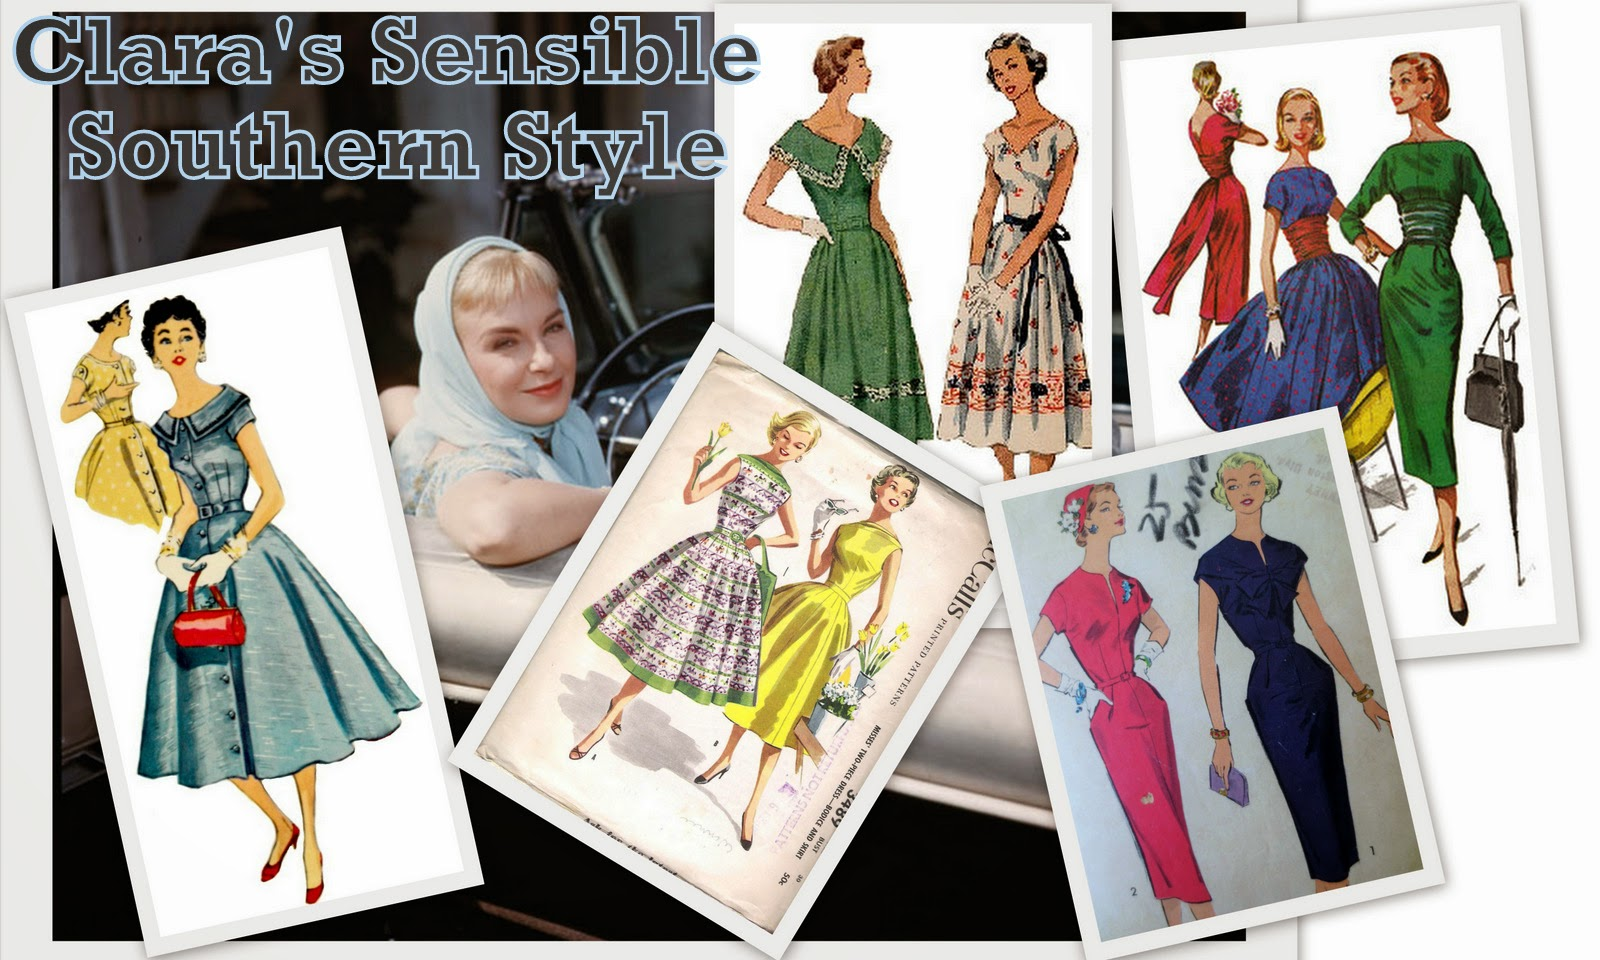 Pattern patter january 2015 oh the southern charm in these lovely vintage sewing patterns all patterns featured are all from members of the pattern patter team for sale on etsy jeuxipadfo Choice Image